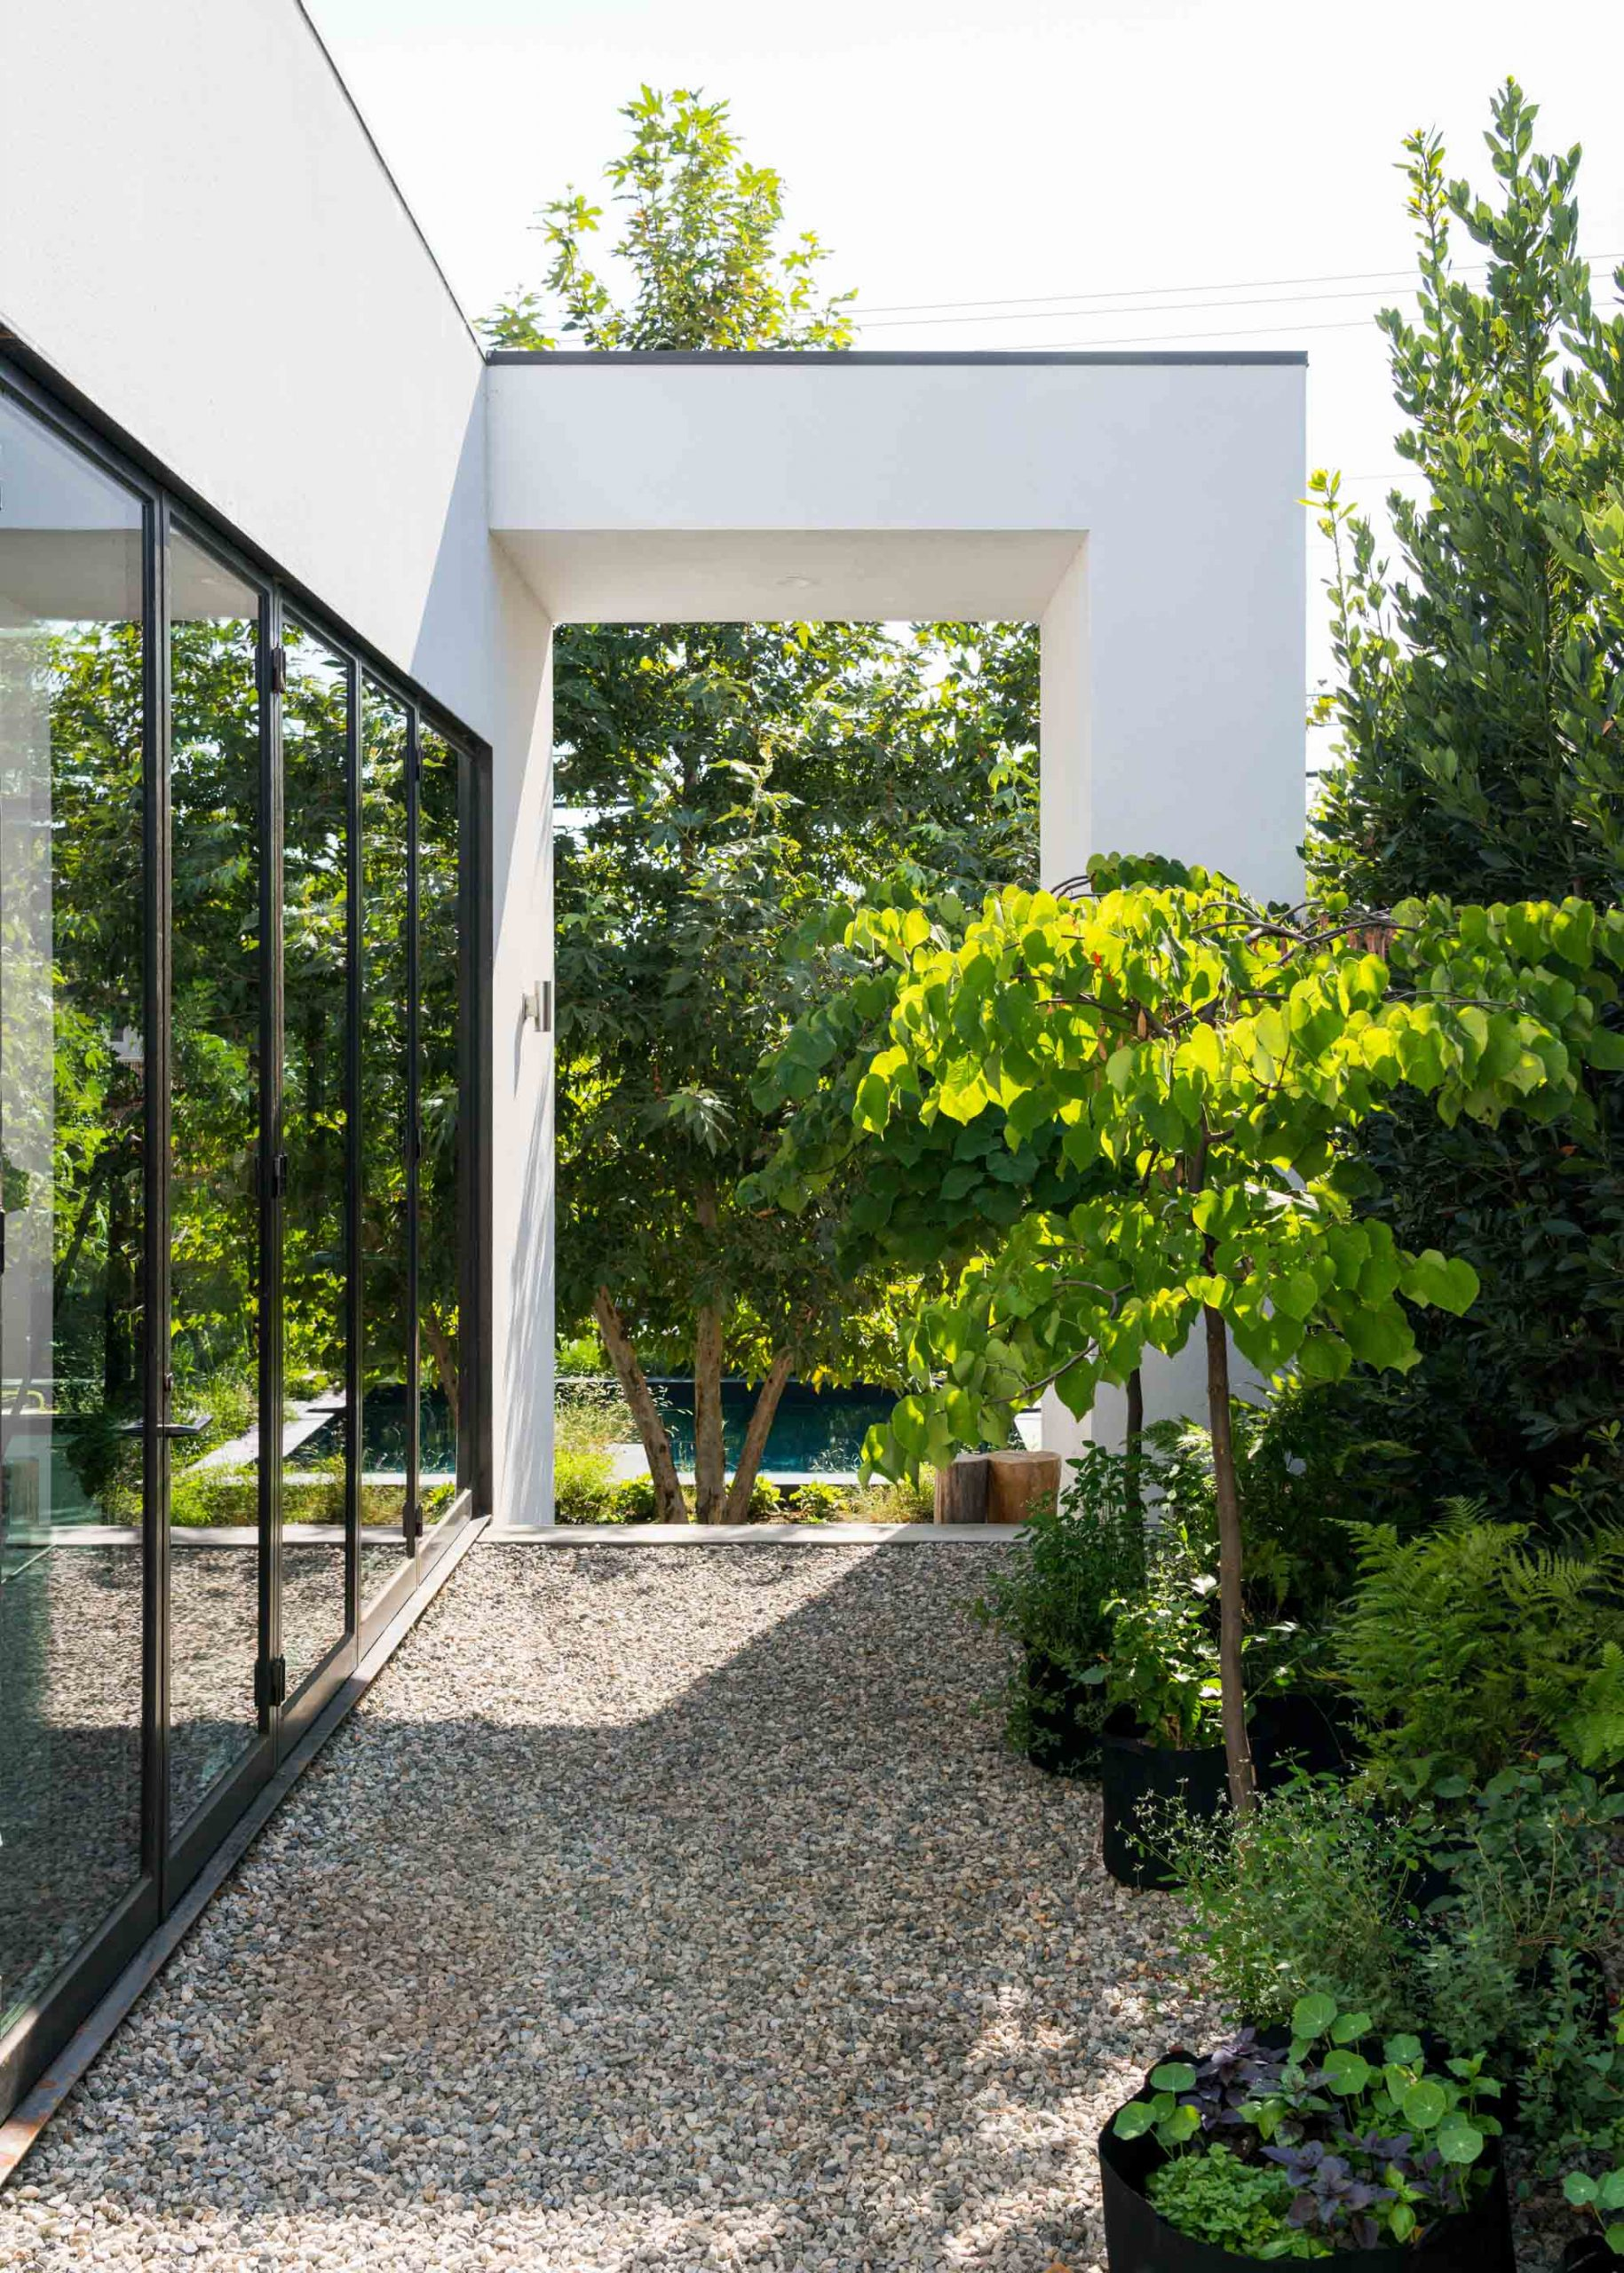 pebble pathway with white architecture and tree